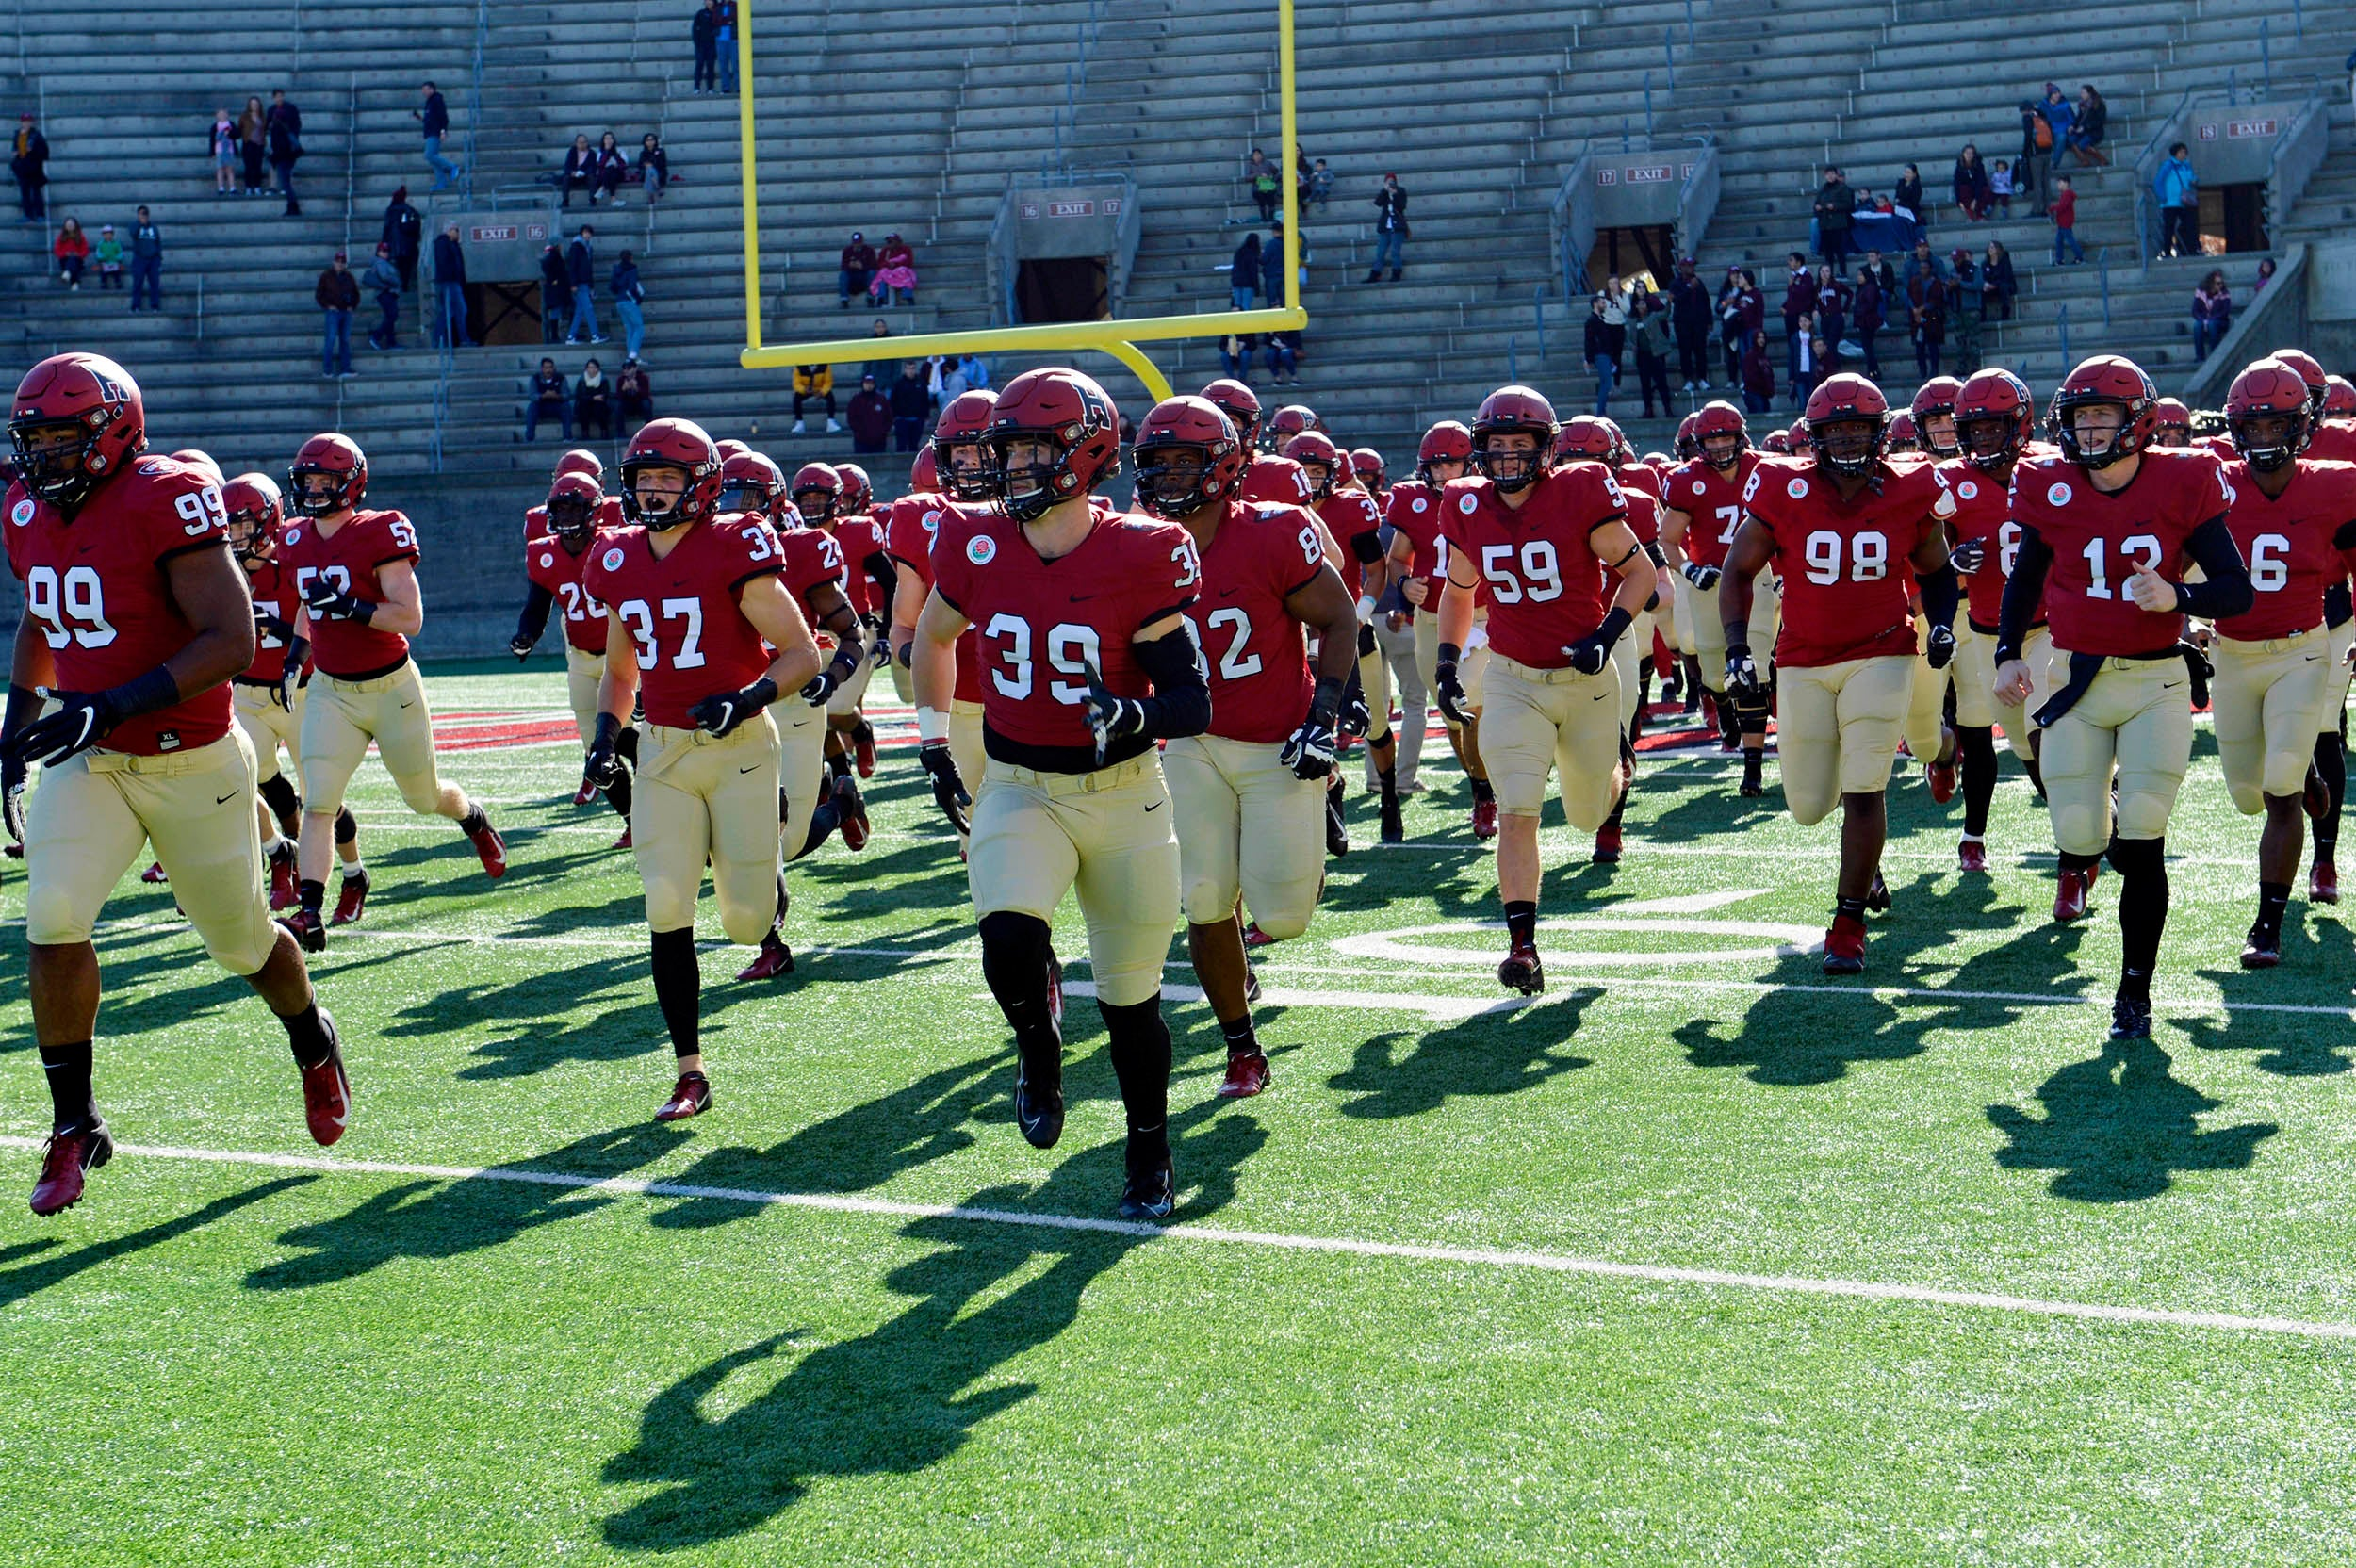 The Harvard football team takes the field against Dartmouth.